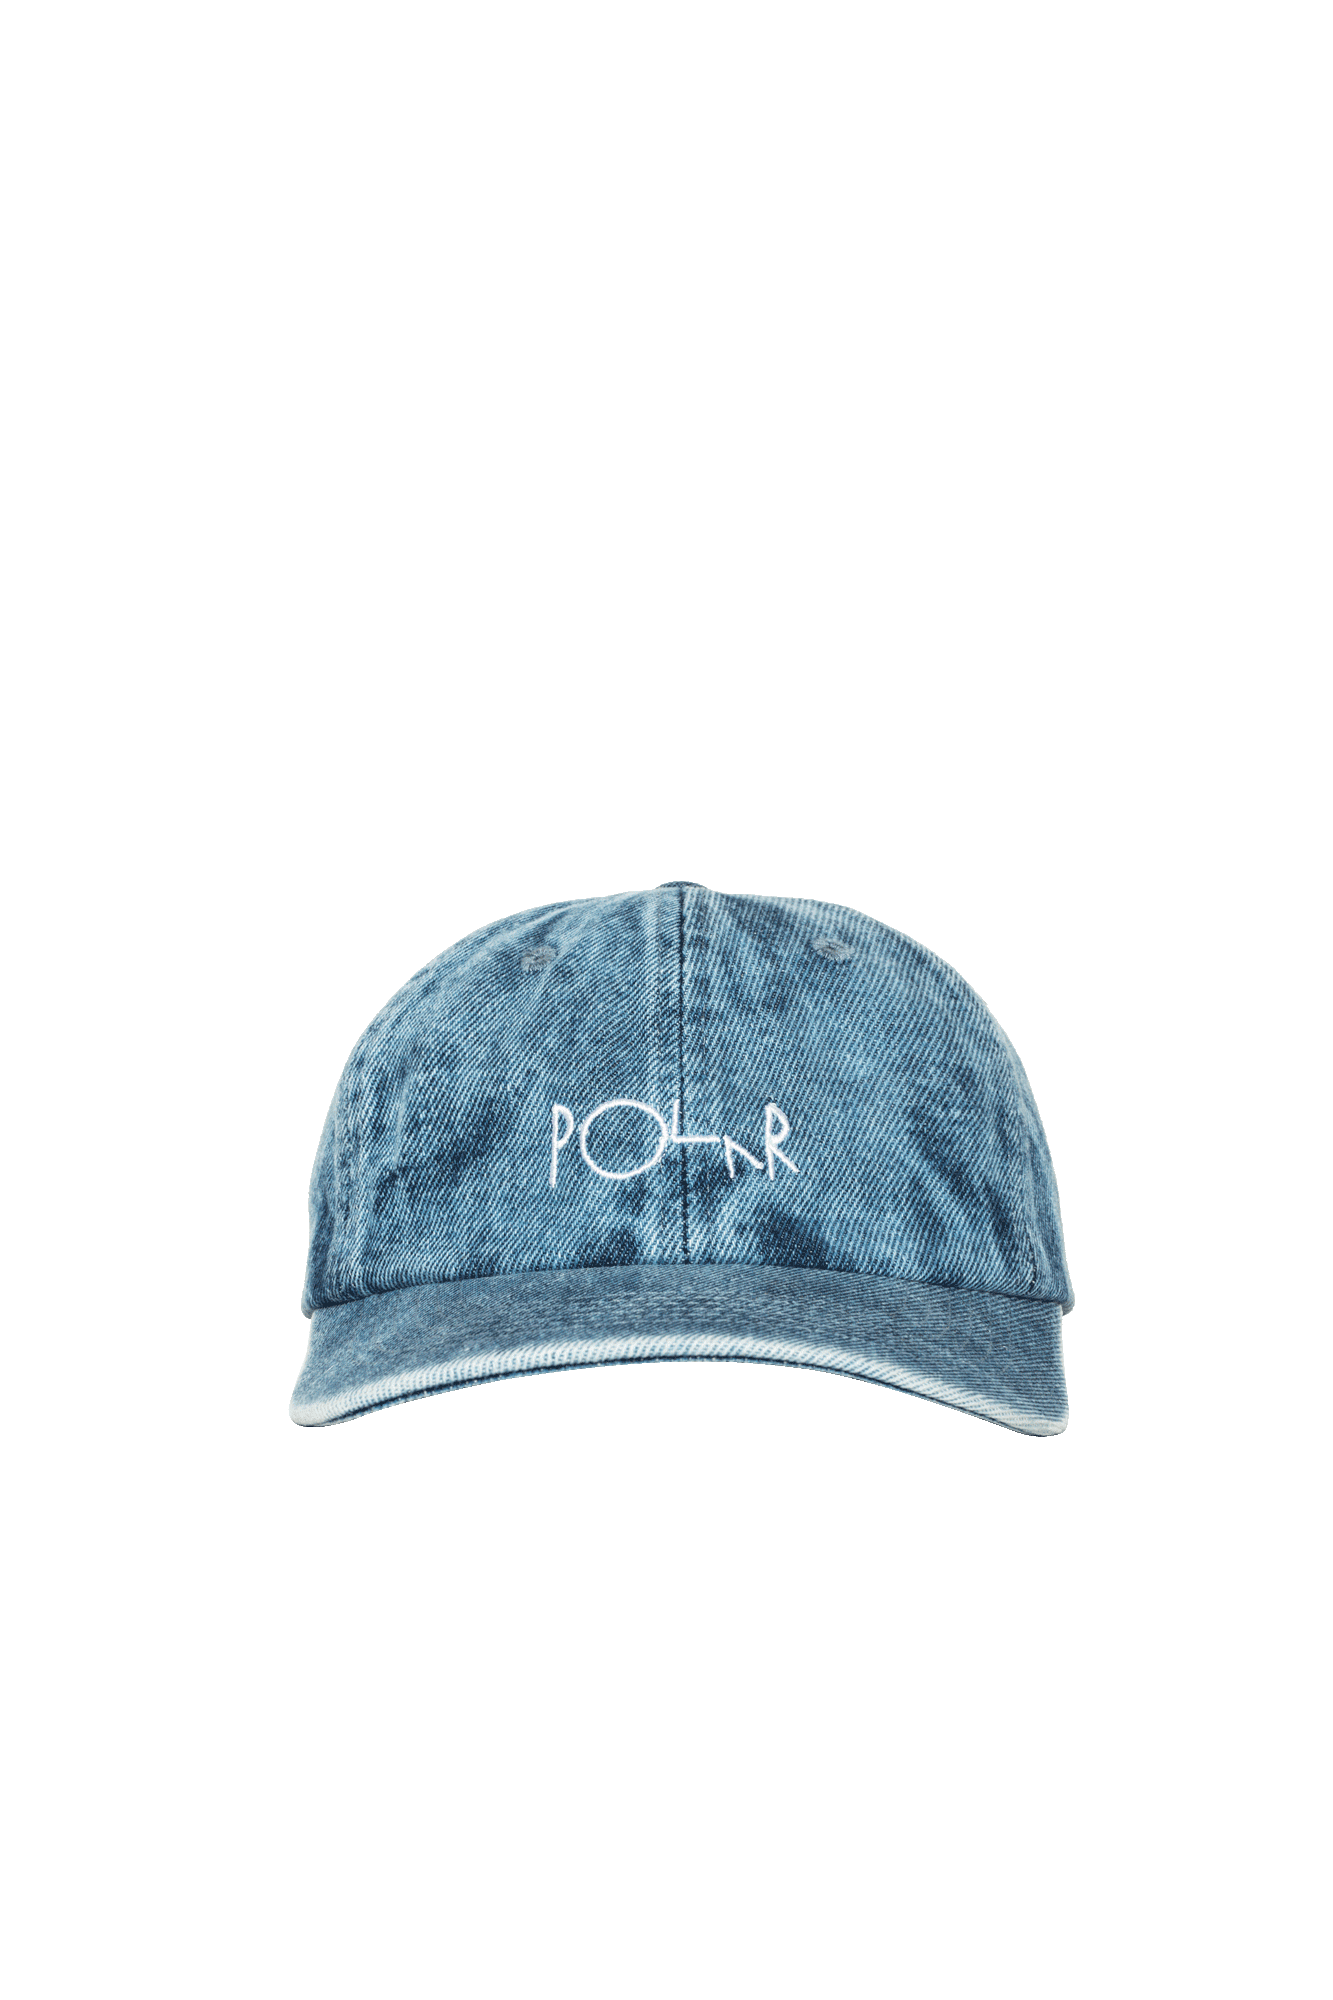 Polar Cappelli Denim Cap Blu POL- DENIM#CAP#BLUE#OS - One Block Down